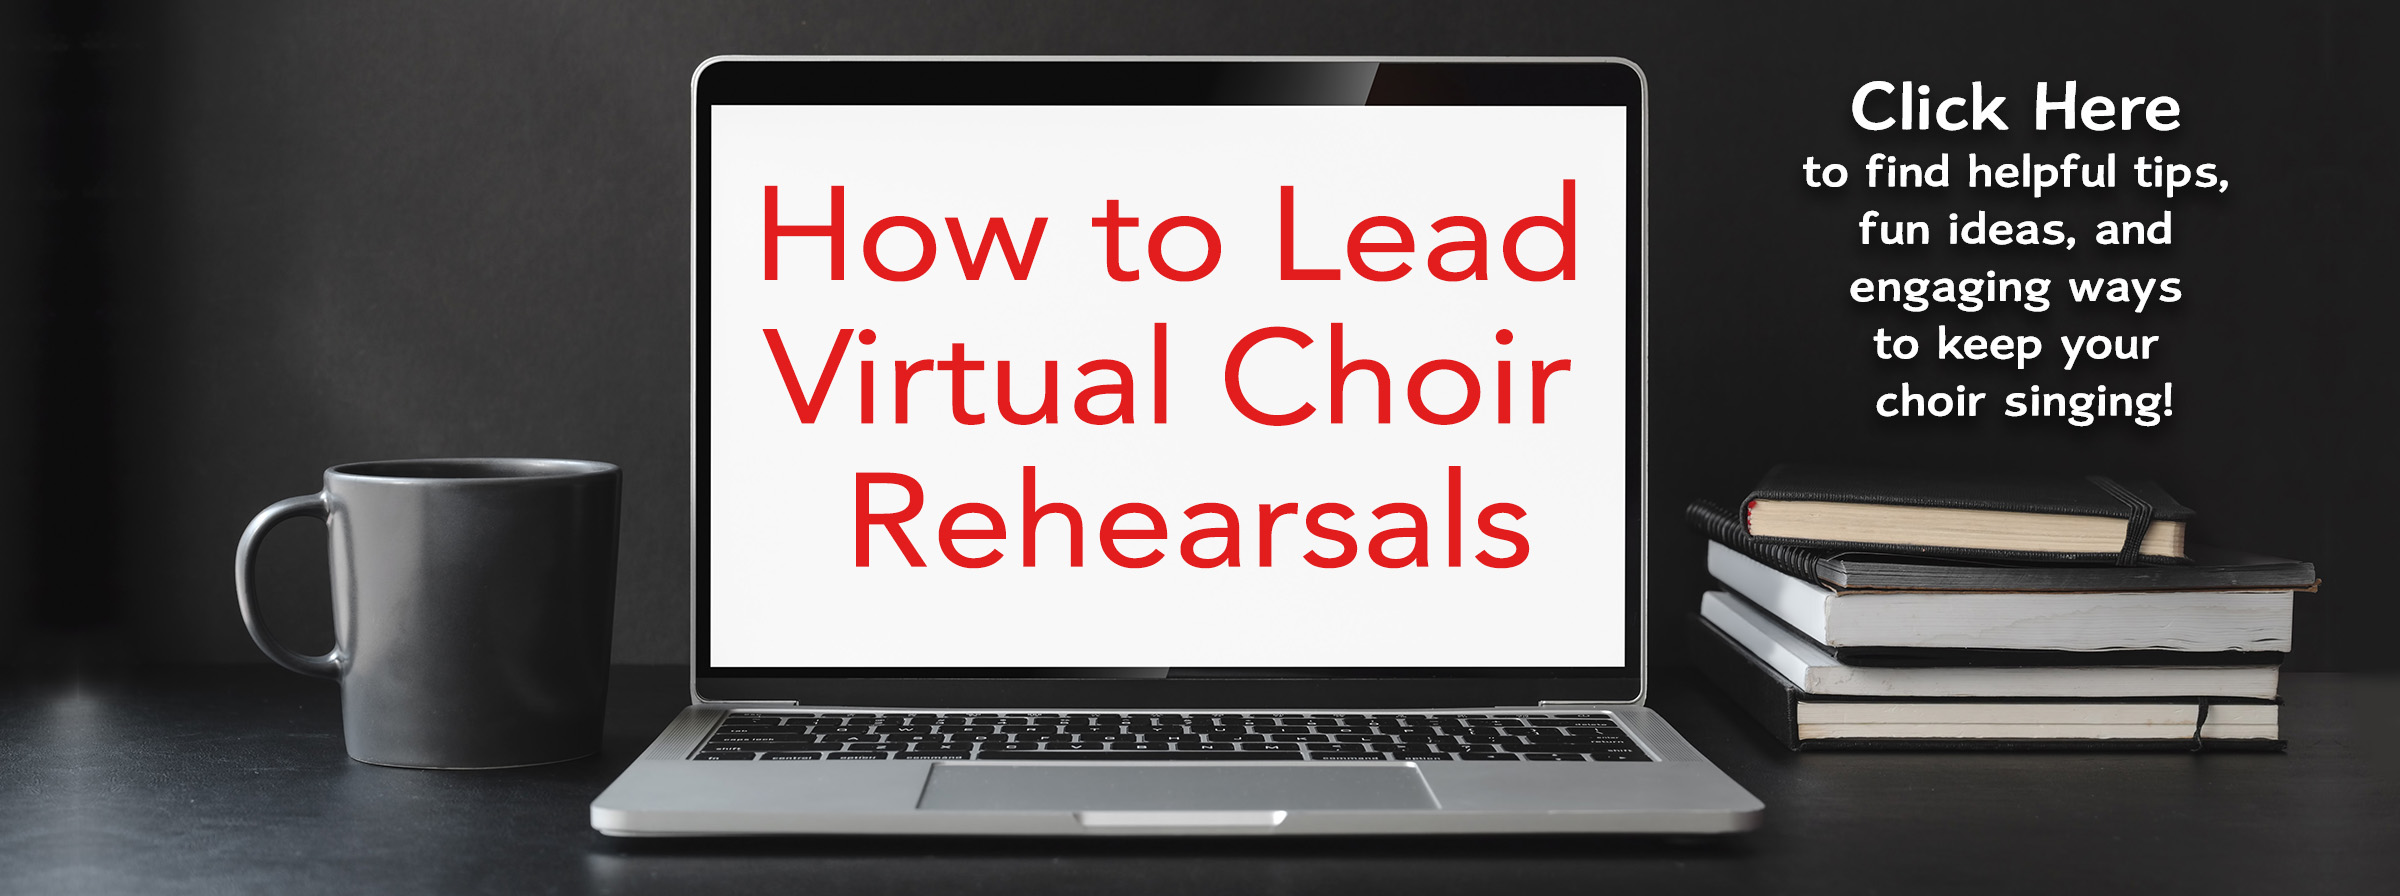 Virtual Choir Rehearsals